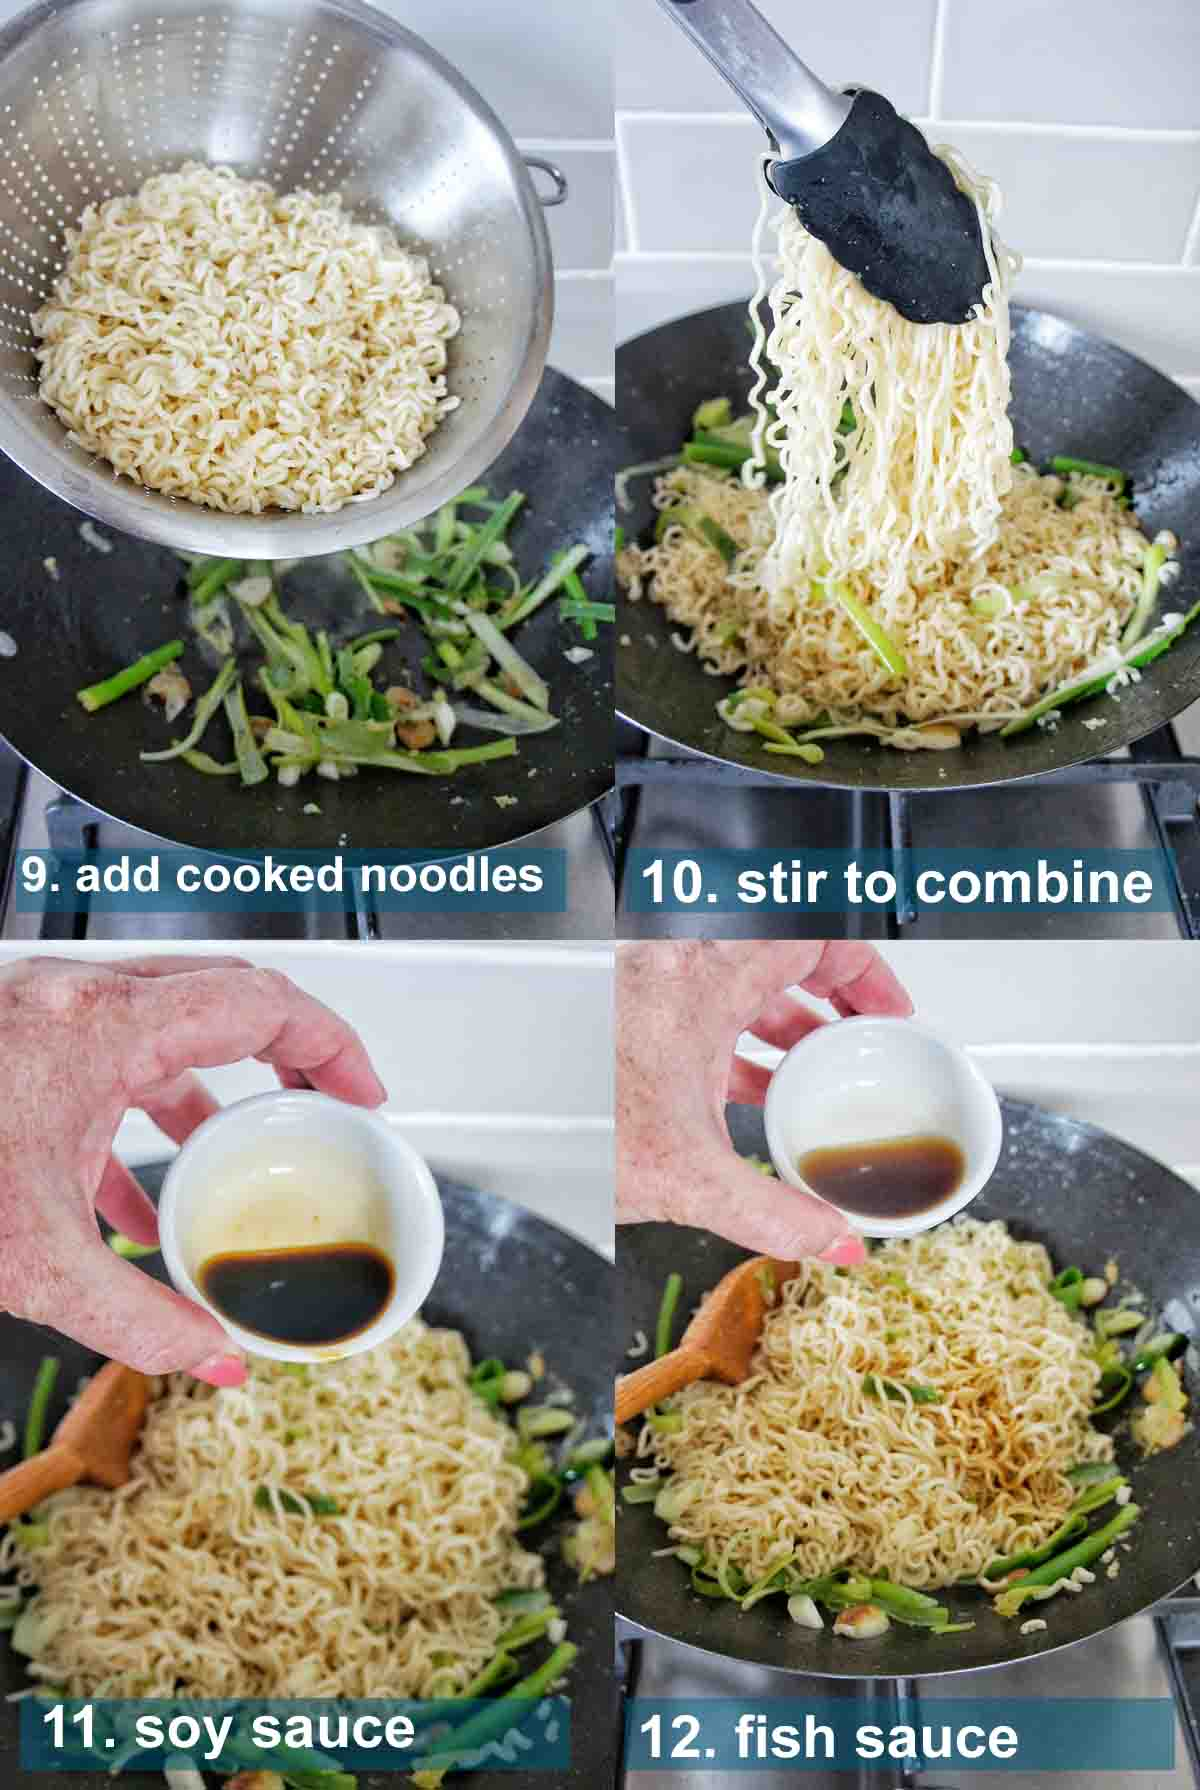 Ginger Noodles method 9 to 12 with text lables